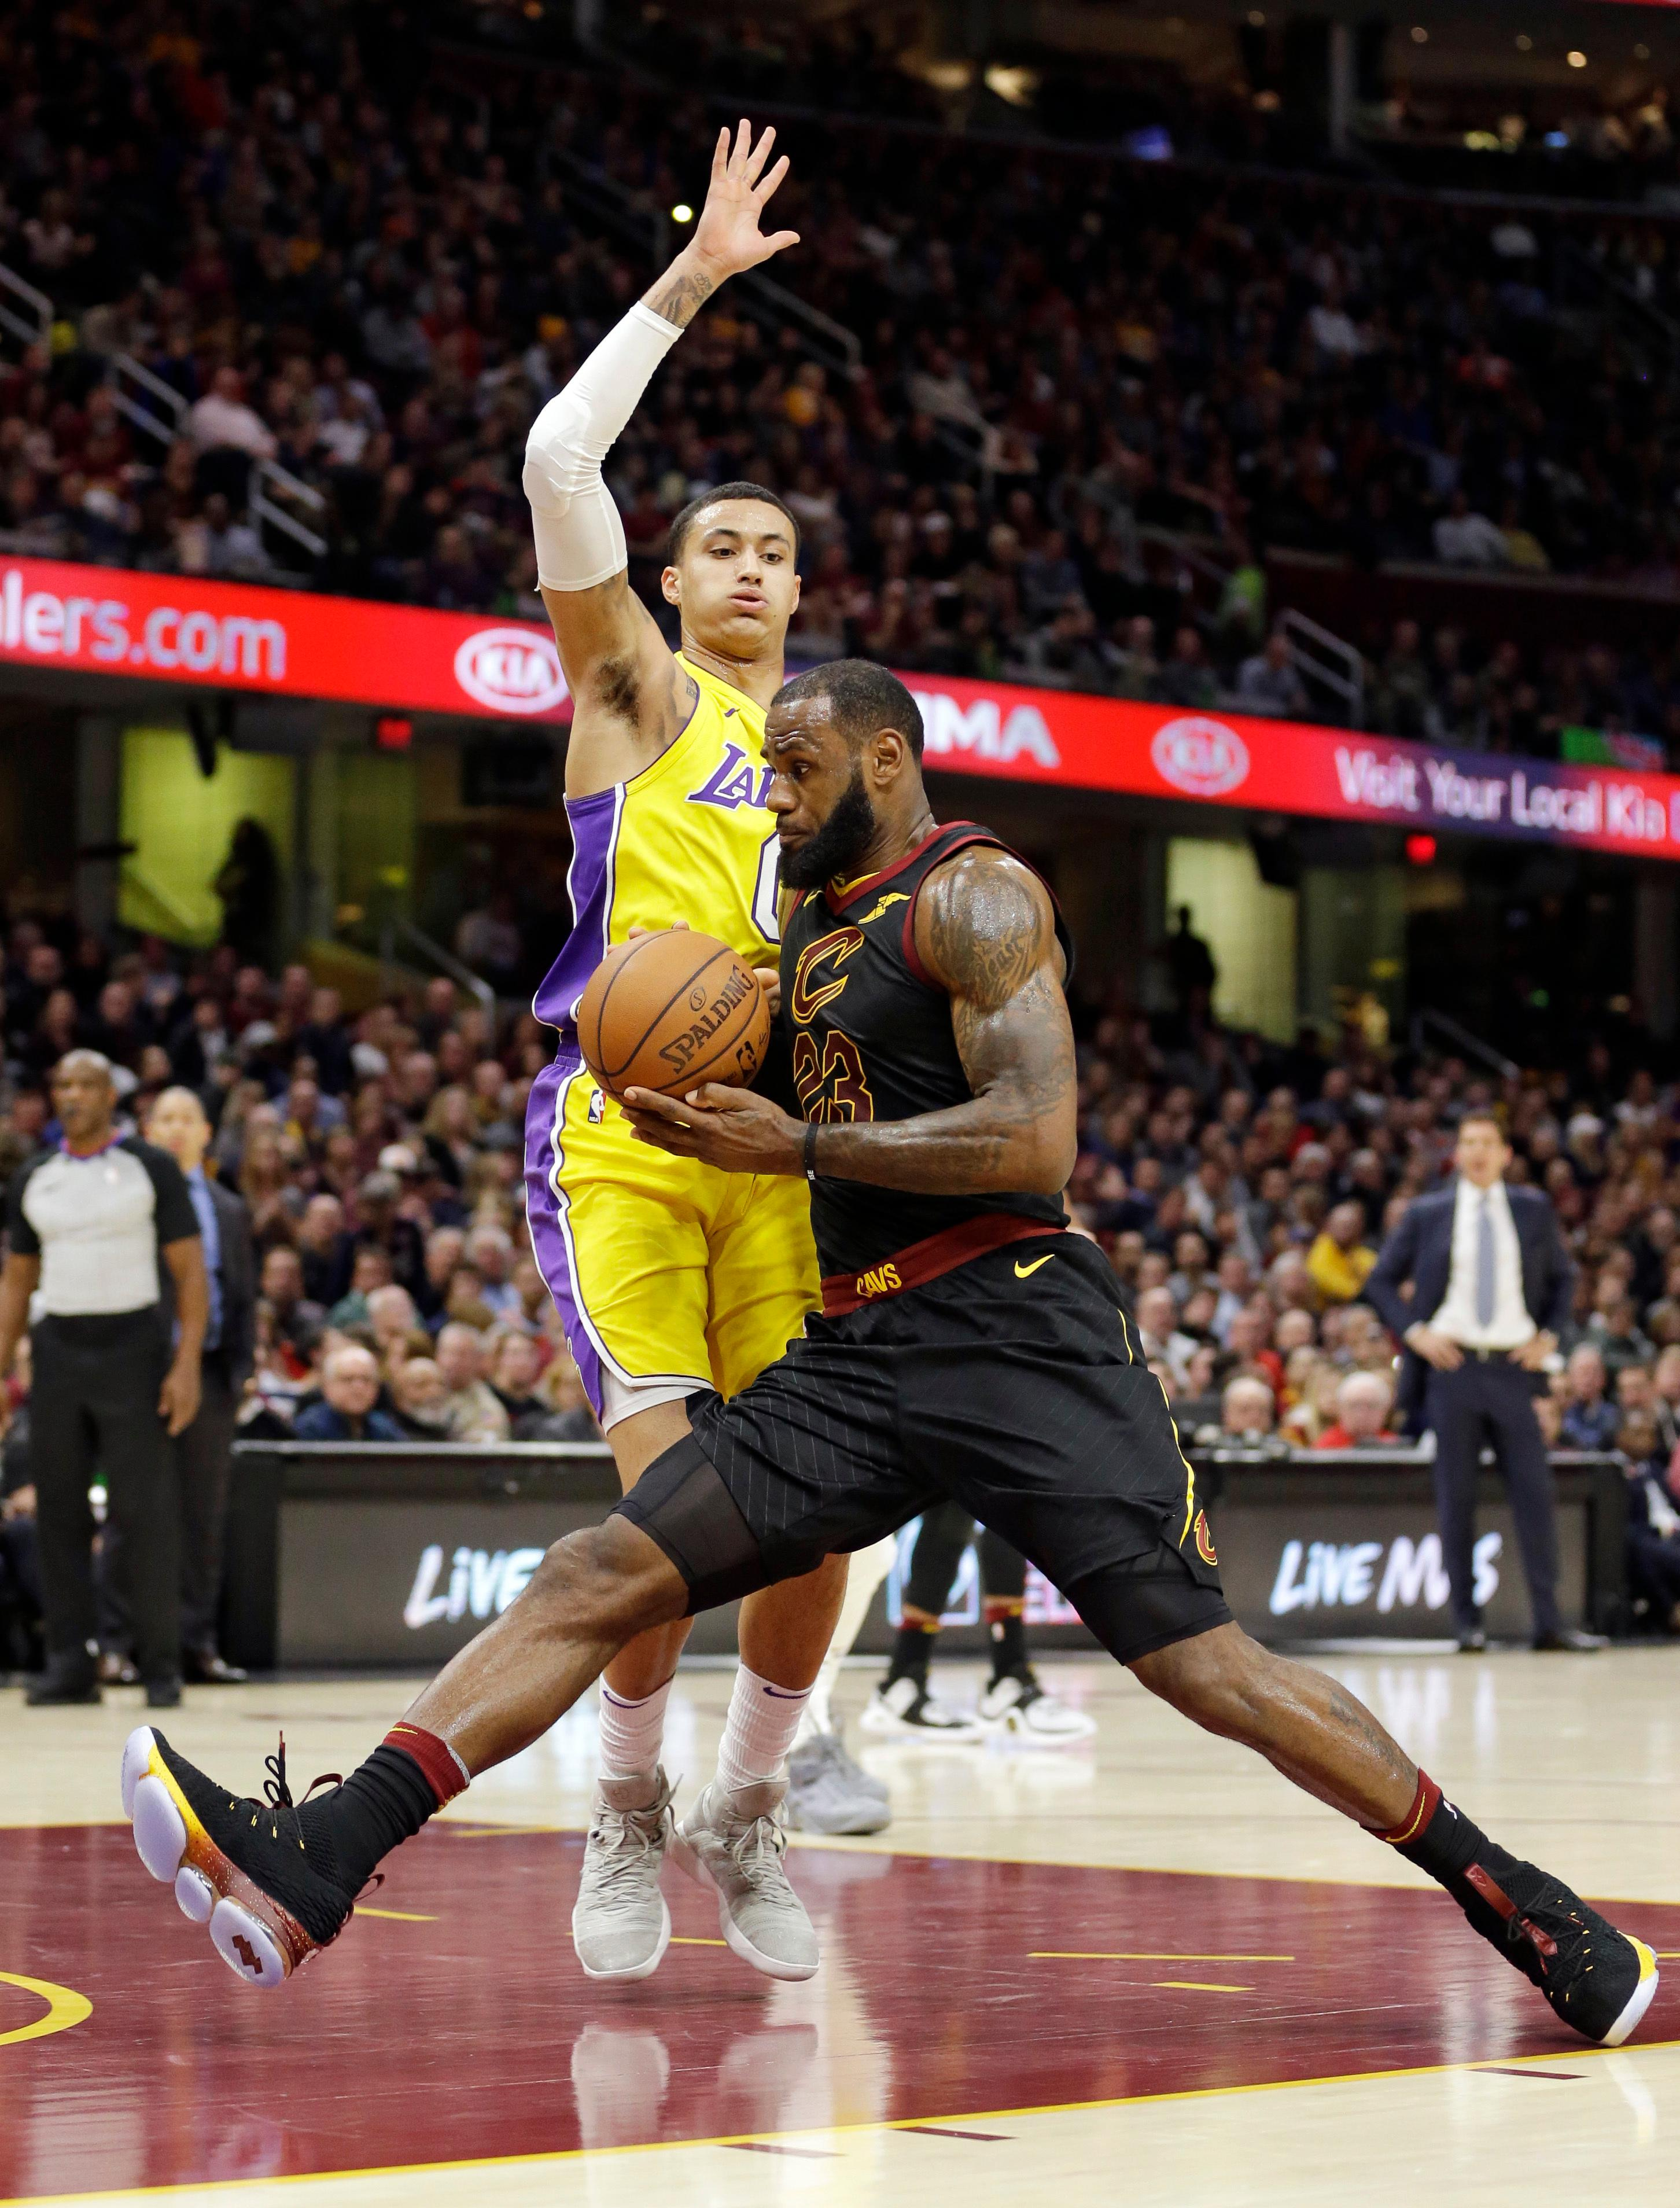 Cleveland Cavaliers' LeBron James, right, drives past Los Angeles Lakers' Kyle Kuzma in the first half of an NBA basketball game, Thursday, Dec. 14, 2017, in Cleveland. (AP Photo/Tony Dejak)